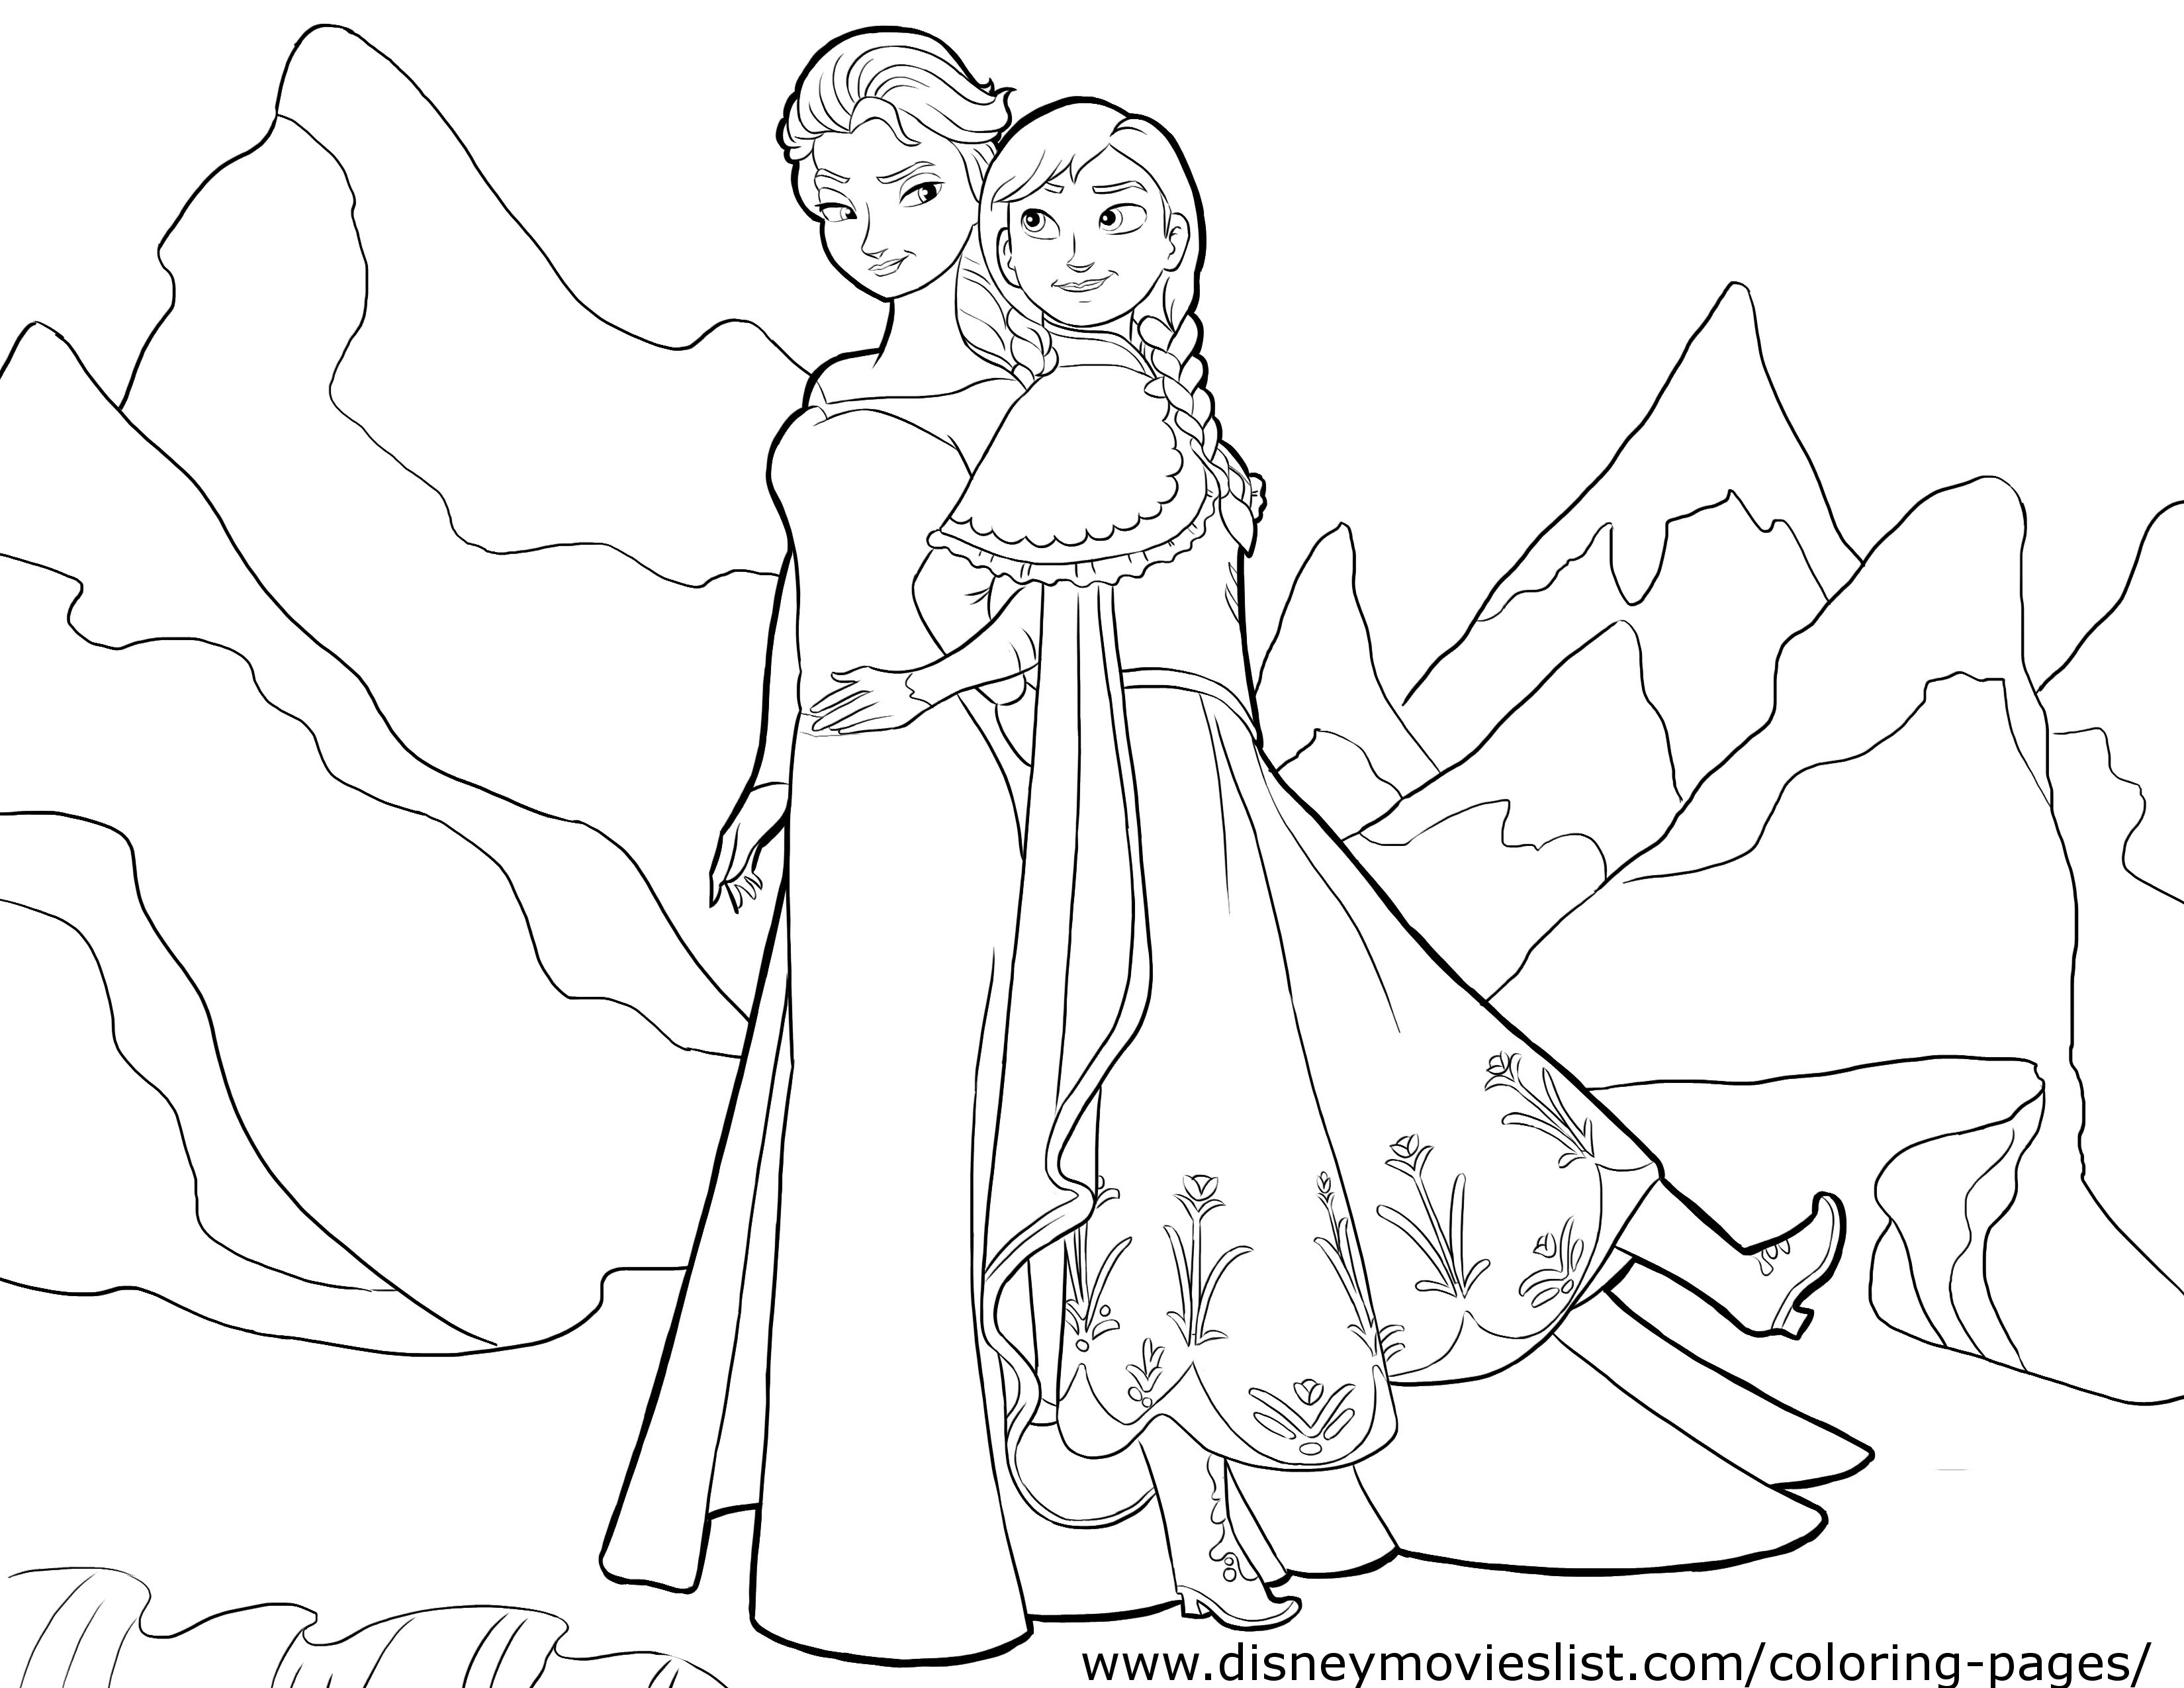 Disney S Frozen Coloring Pages Sheet Free Disney Printable Frozen